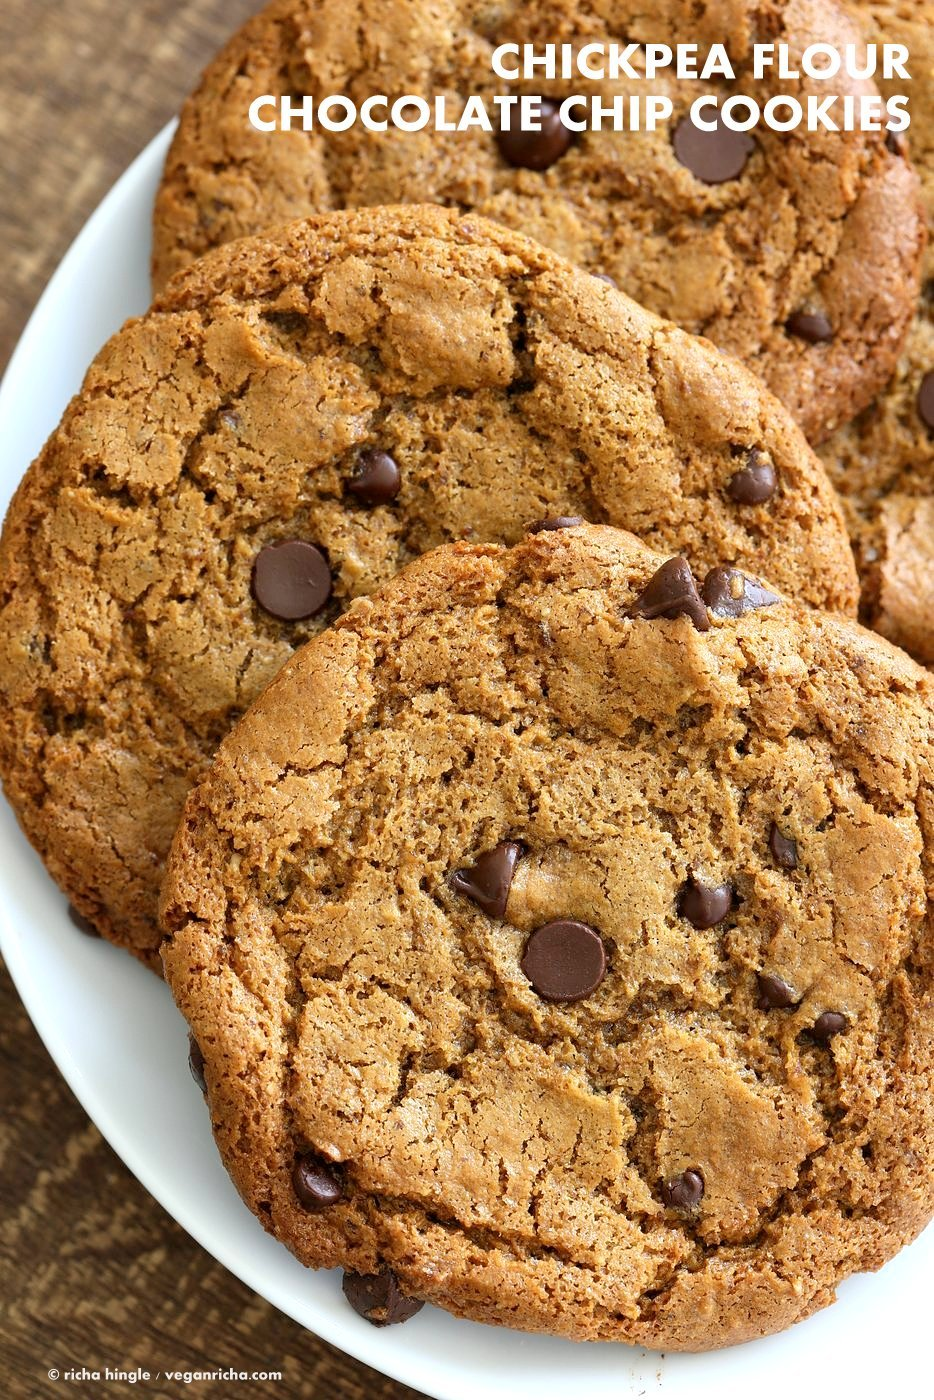 Chickpea Flour Chocolate Chip Cookies. Huge Chewy Cookies with Fiber and Protein. 3 gms of protein per cookie! These cookies need 1 Bowl, are grain-free, gluten-free vegan and can be made nut-free. | VeganRicha.com